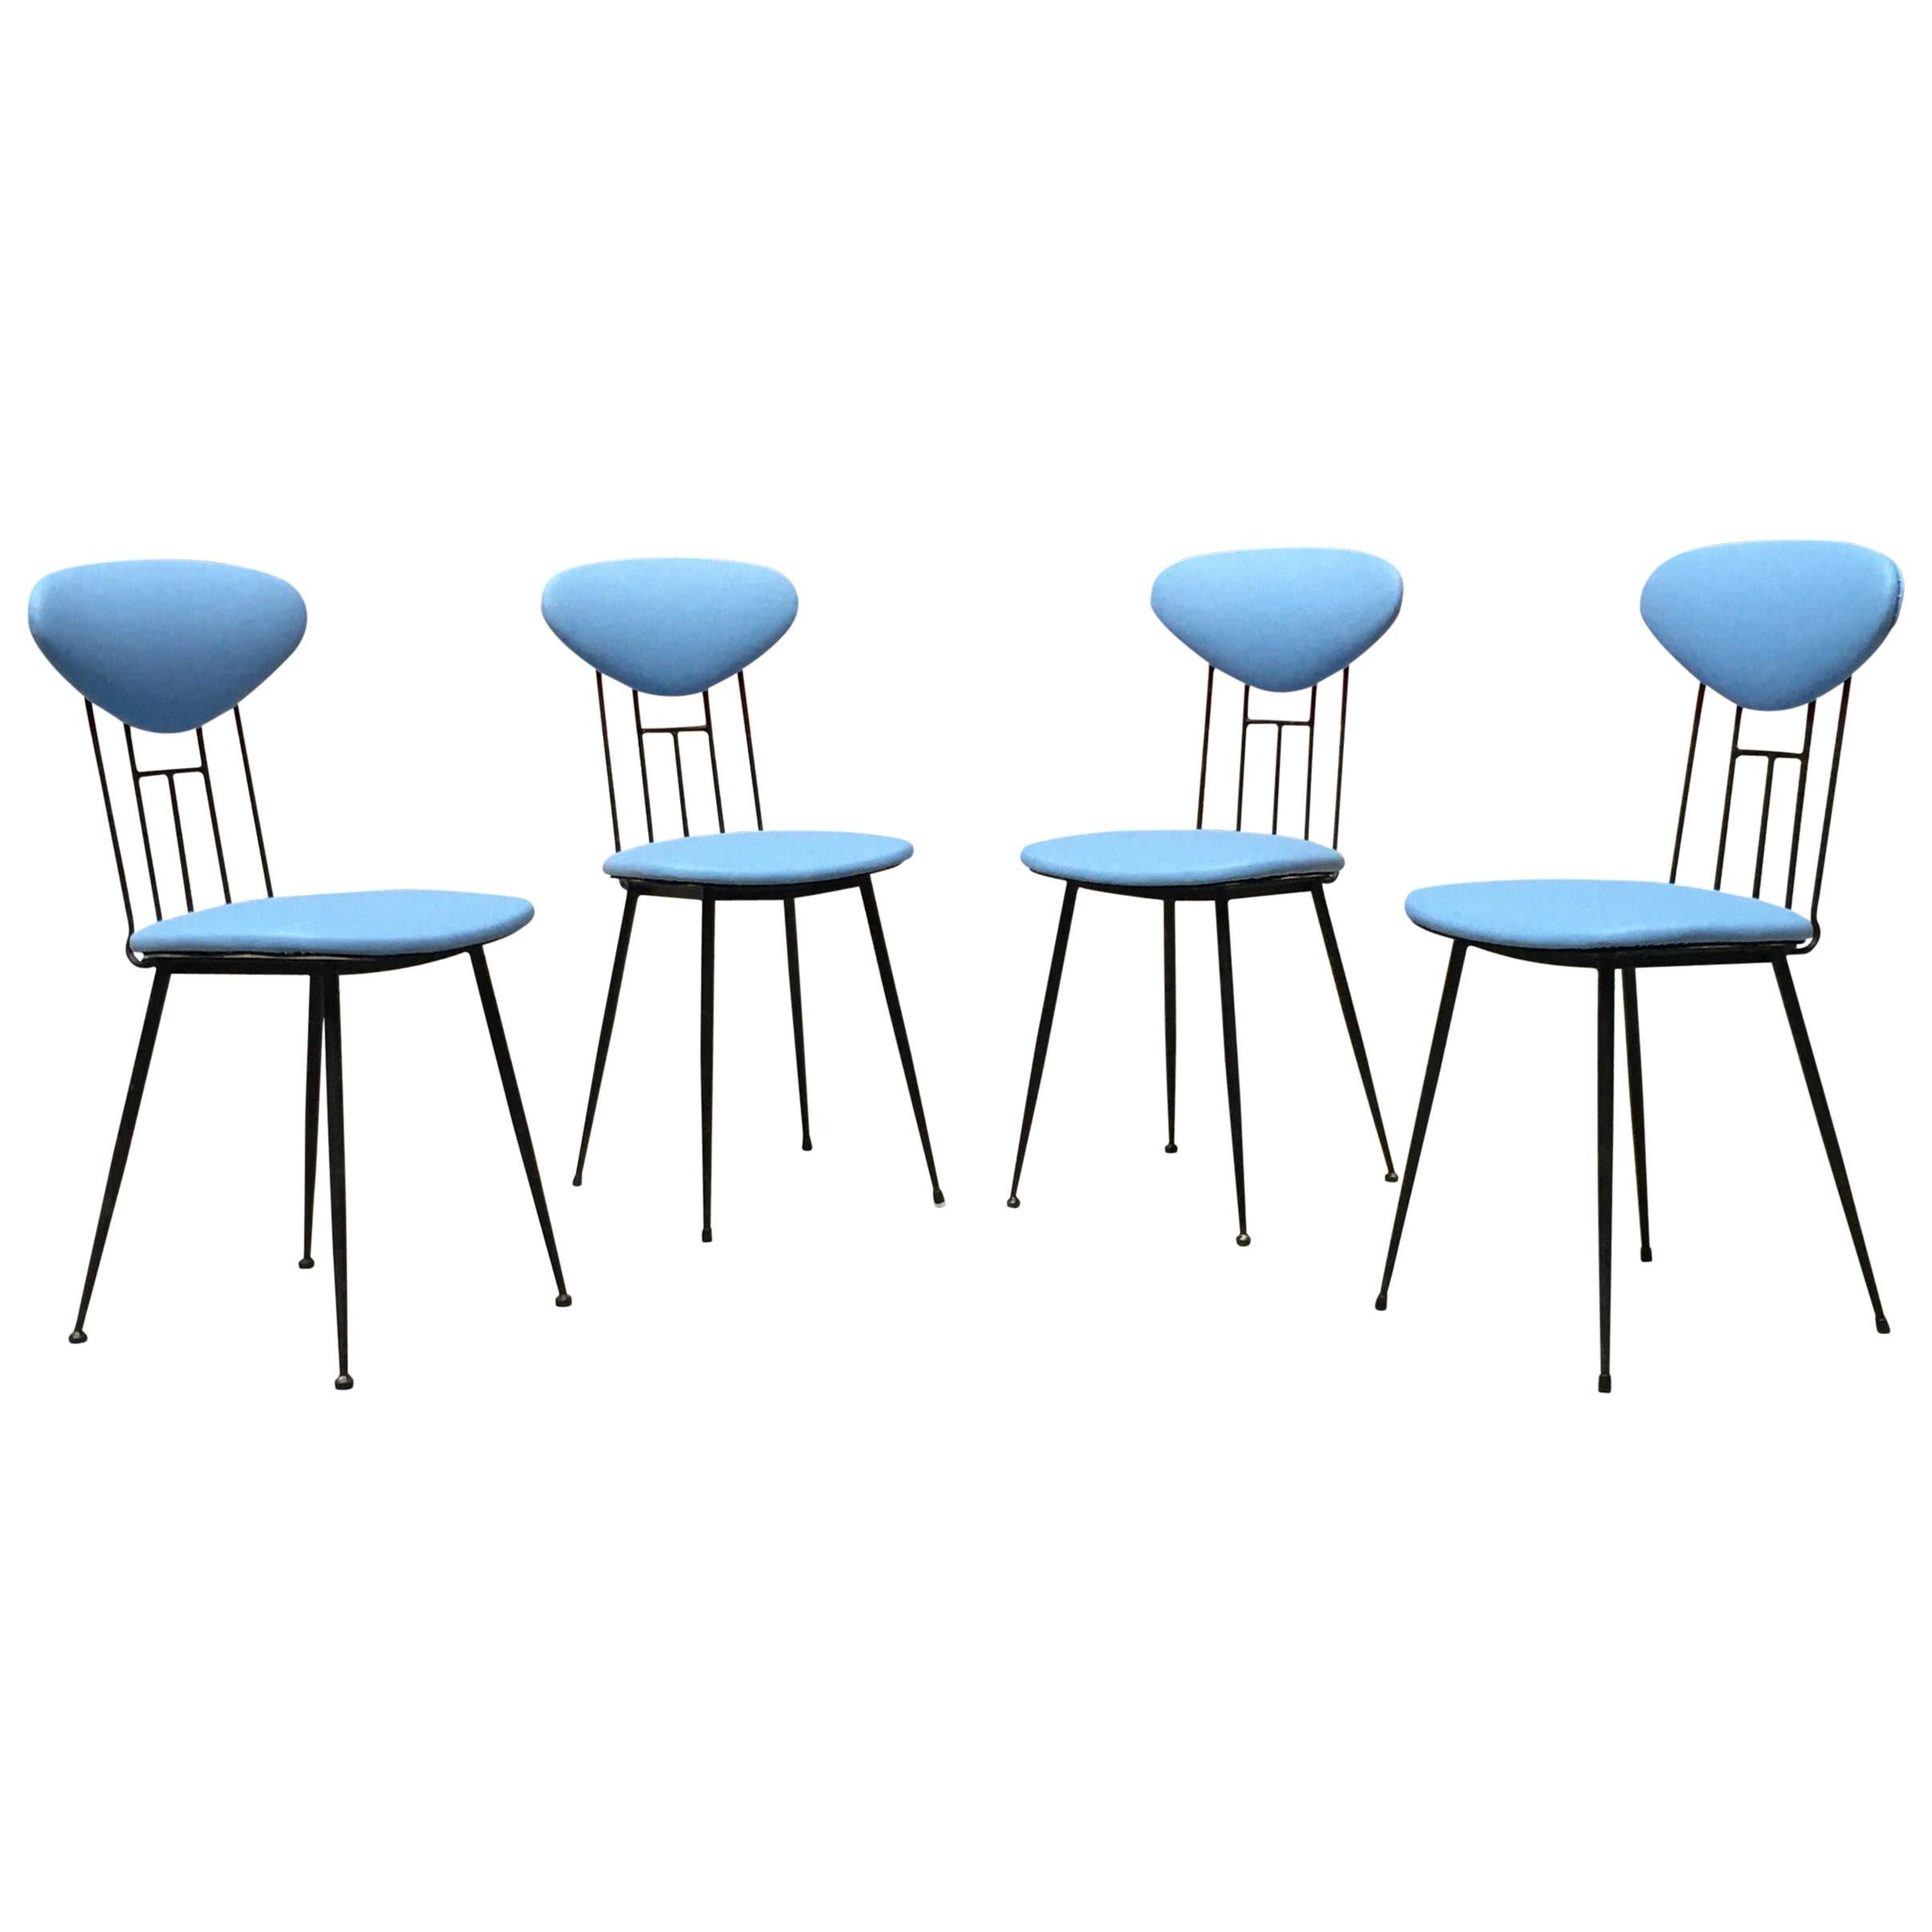 Italian Light-Blue Leatherette and Black Metal Chair, 1980s